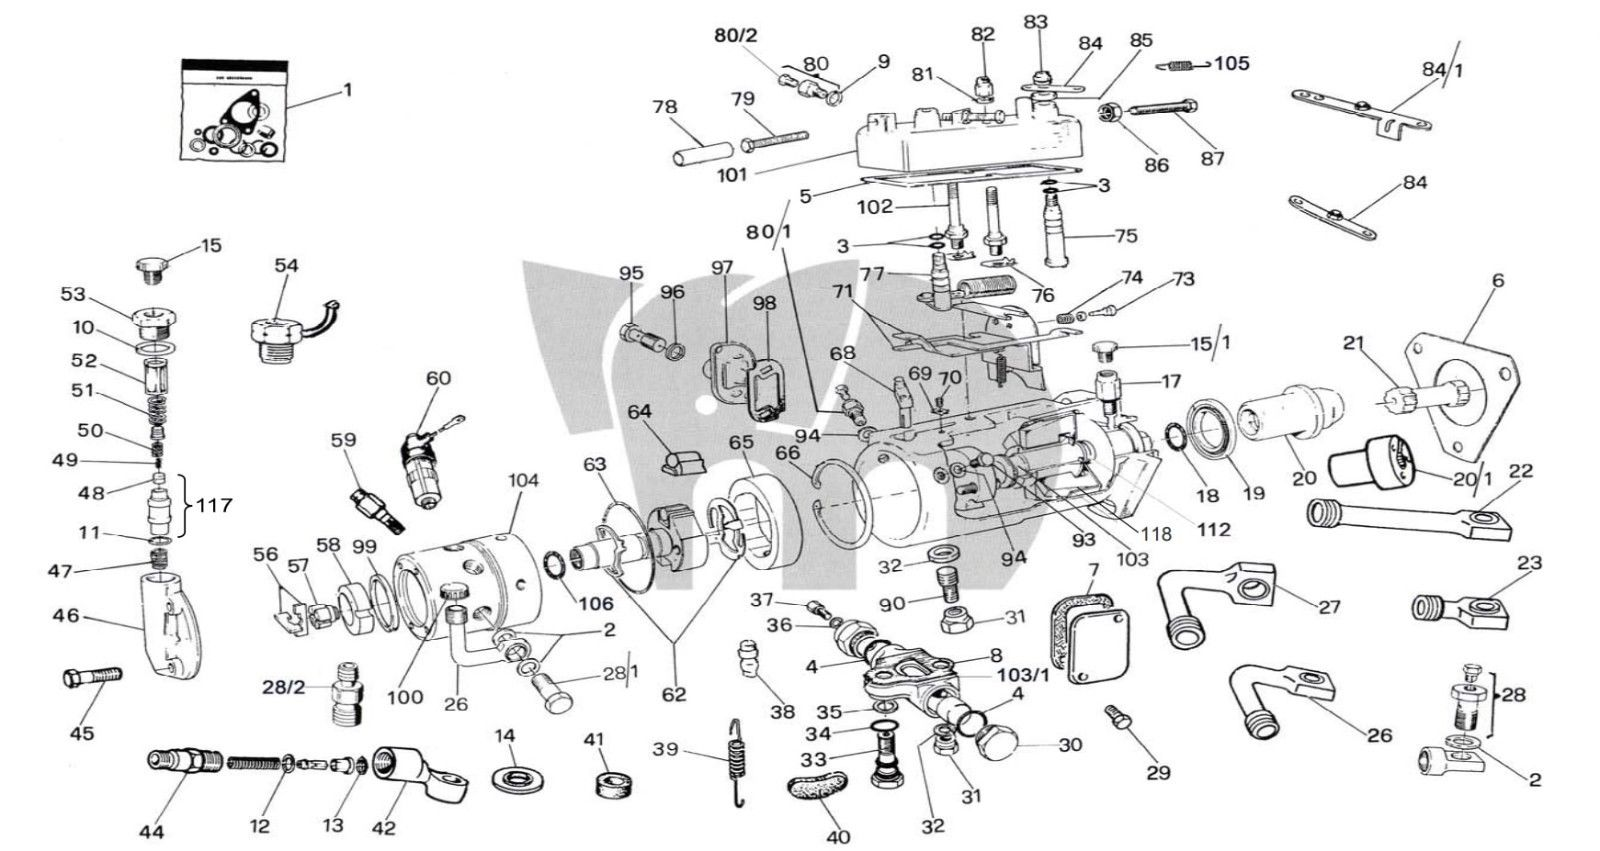 Wiring Diagram For International 574 Tractor Search Ih 674 Engine 6 Cylinder 656 Farmall Schematics